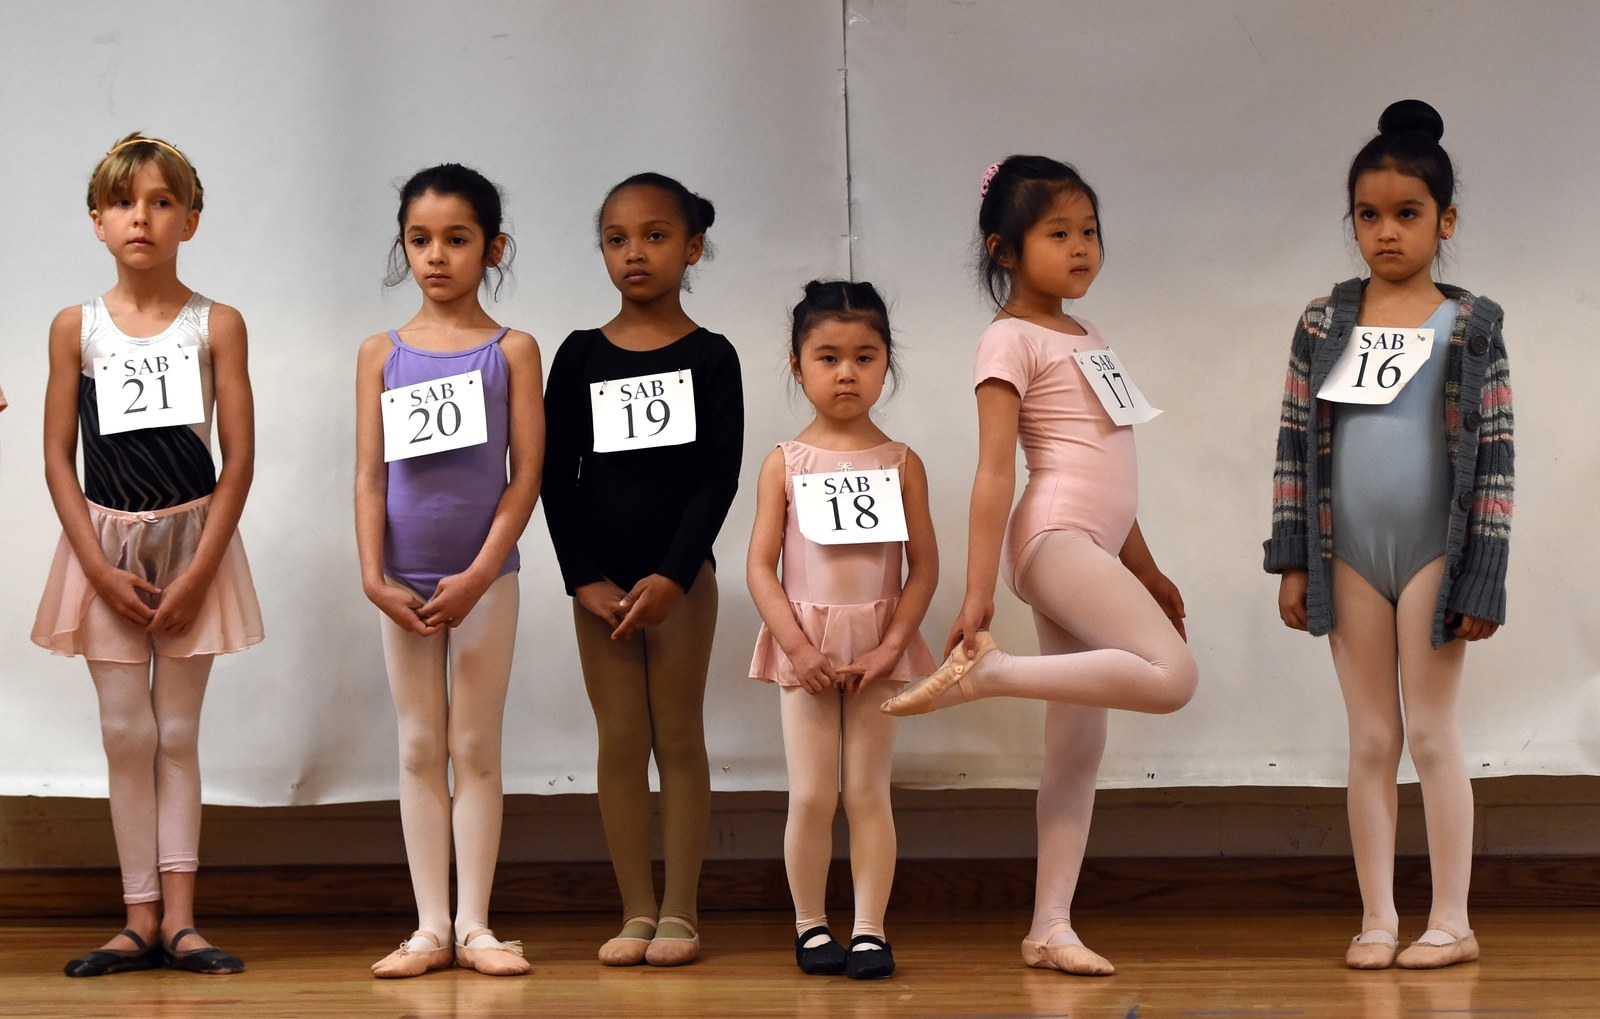 Young ballet dancers try out for the School of American Ballet Winter Term at the PS 124 Yung Wing school in New York City, April 2015.